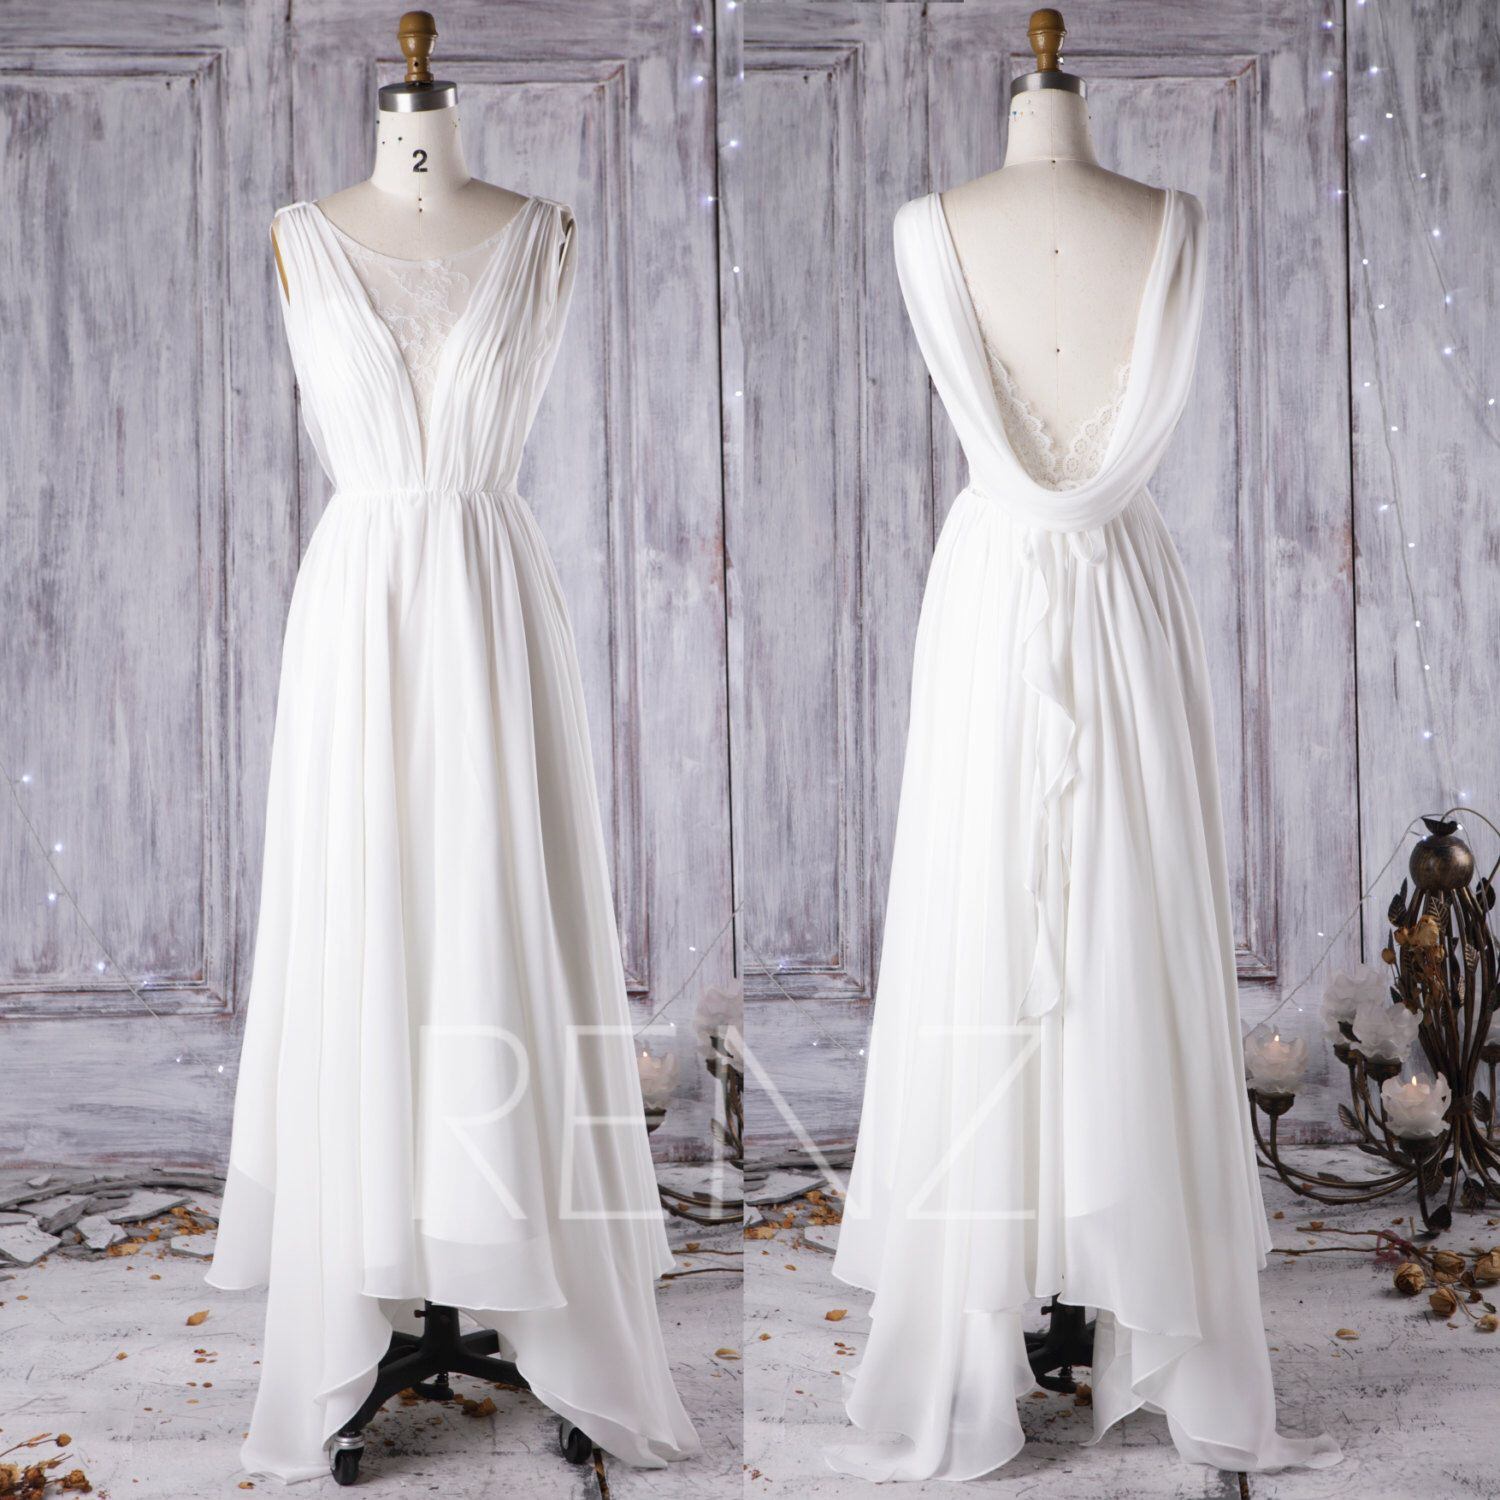 2016 Off White Chiffon Bridesmaid Dress Long, Lace Scoop Neck Wedding Dress, Ruffle Ball Gown, Draped Back Prom Dress Floor Length (HW192) by RenzRags on Etsy https://www.etsy.com/listing/474749215/2016-off-white-chiffon-bridesmaid-dress